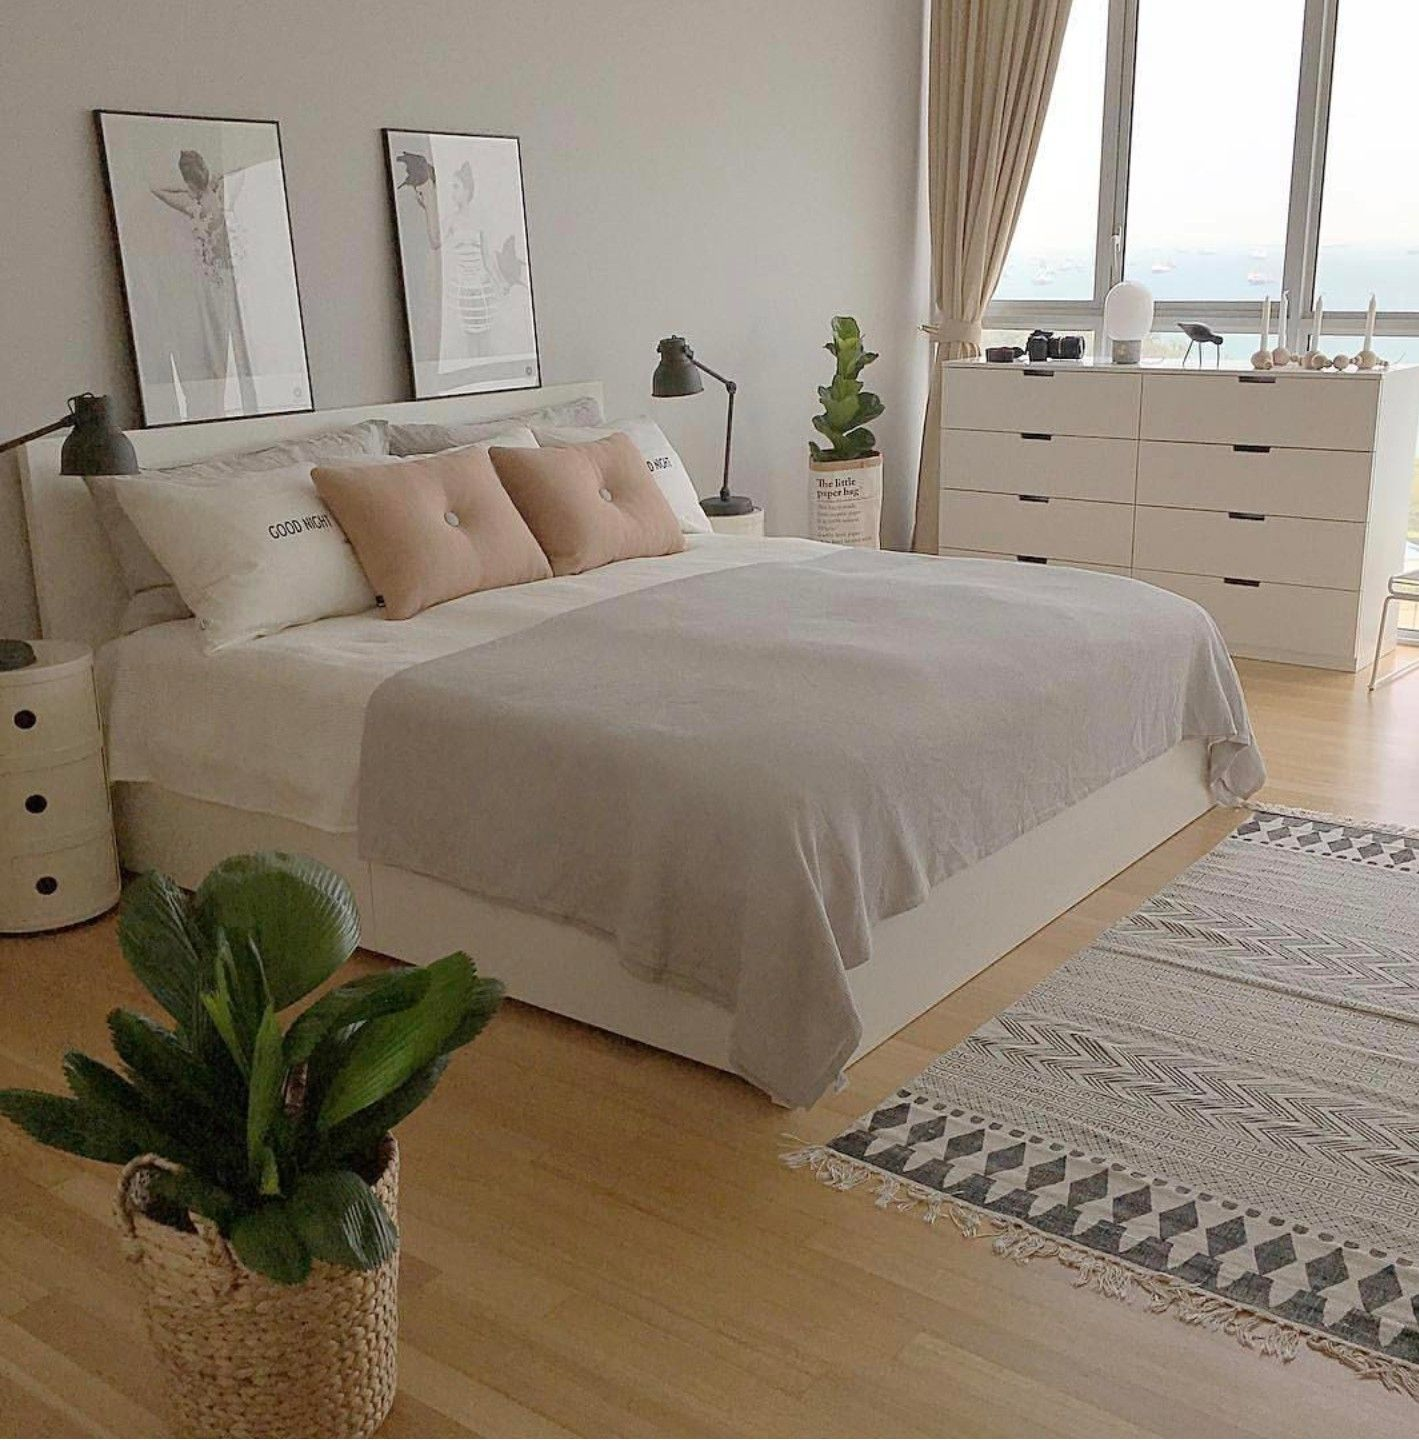 Bedroom Chairs Auckland Art For Master Bedroom Bedroom Colour Ideas In Pakistan Best Bedroom Paint Colors: Nude Neutral Pastel Simple Bedroom Decor Interior